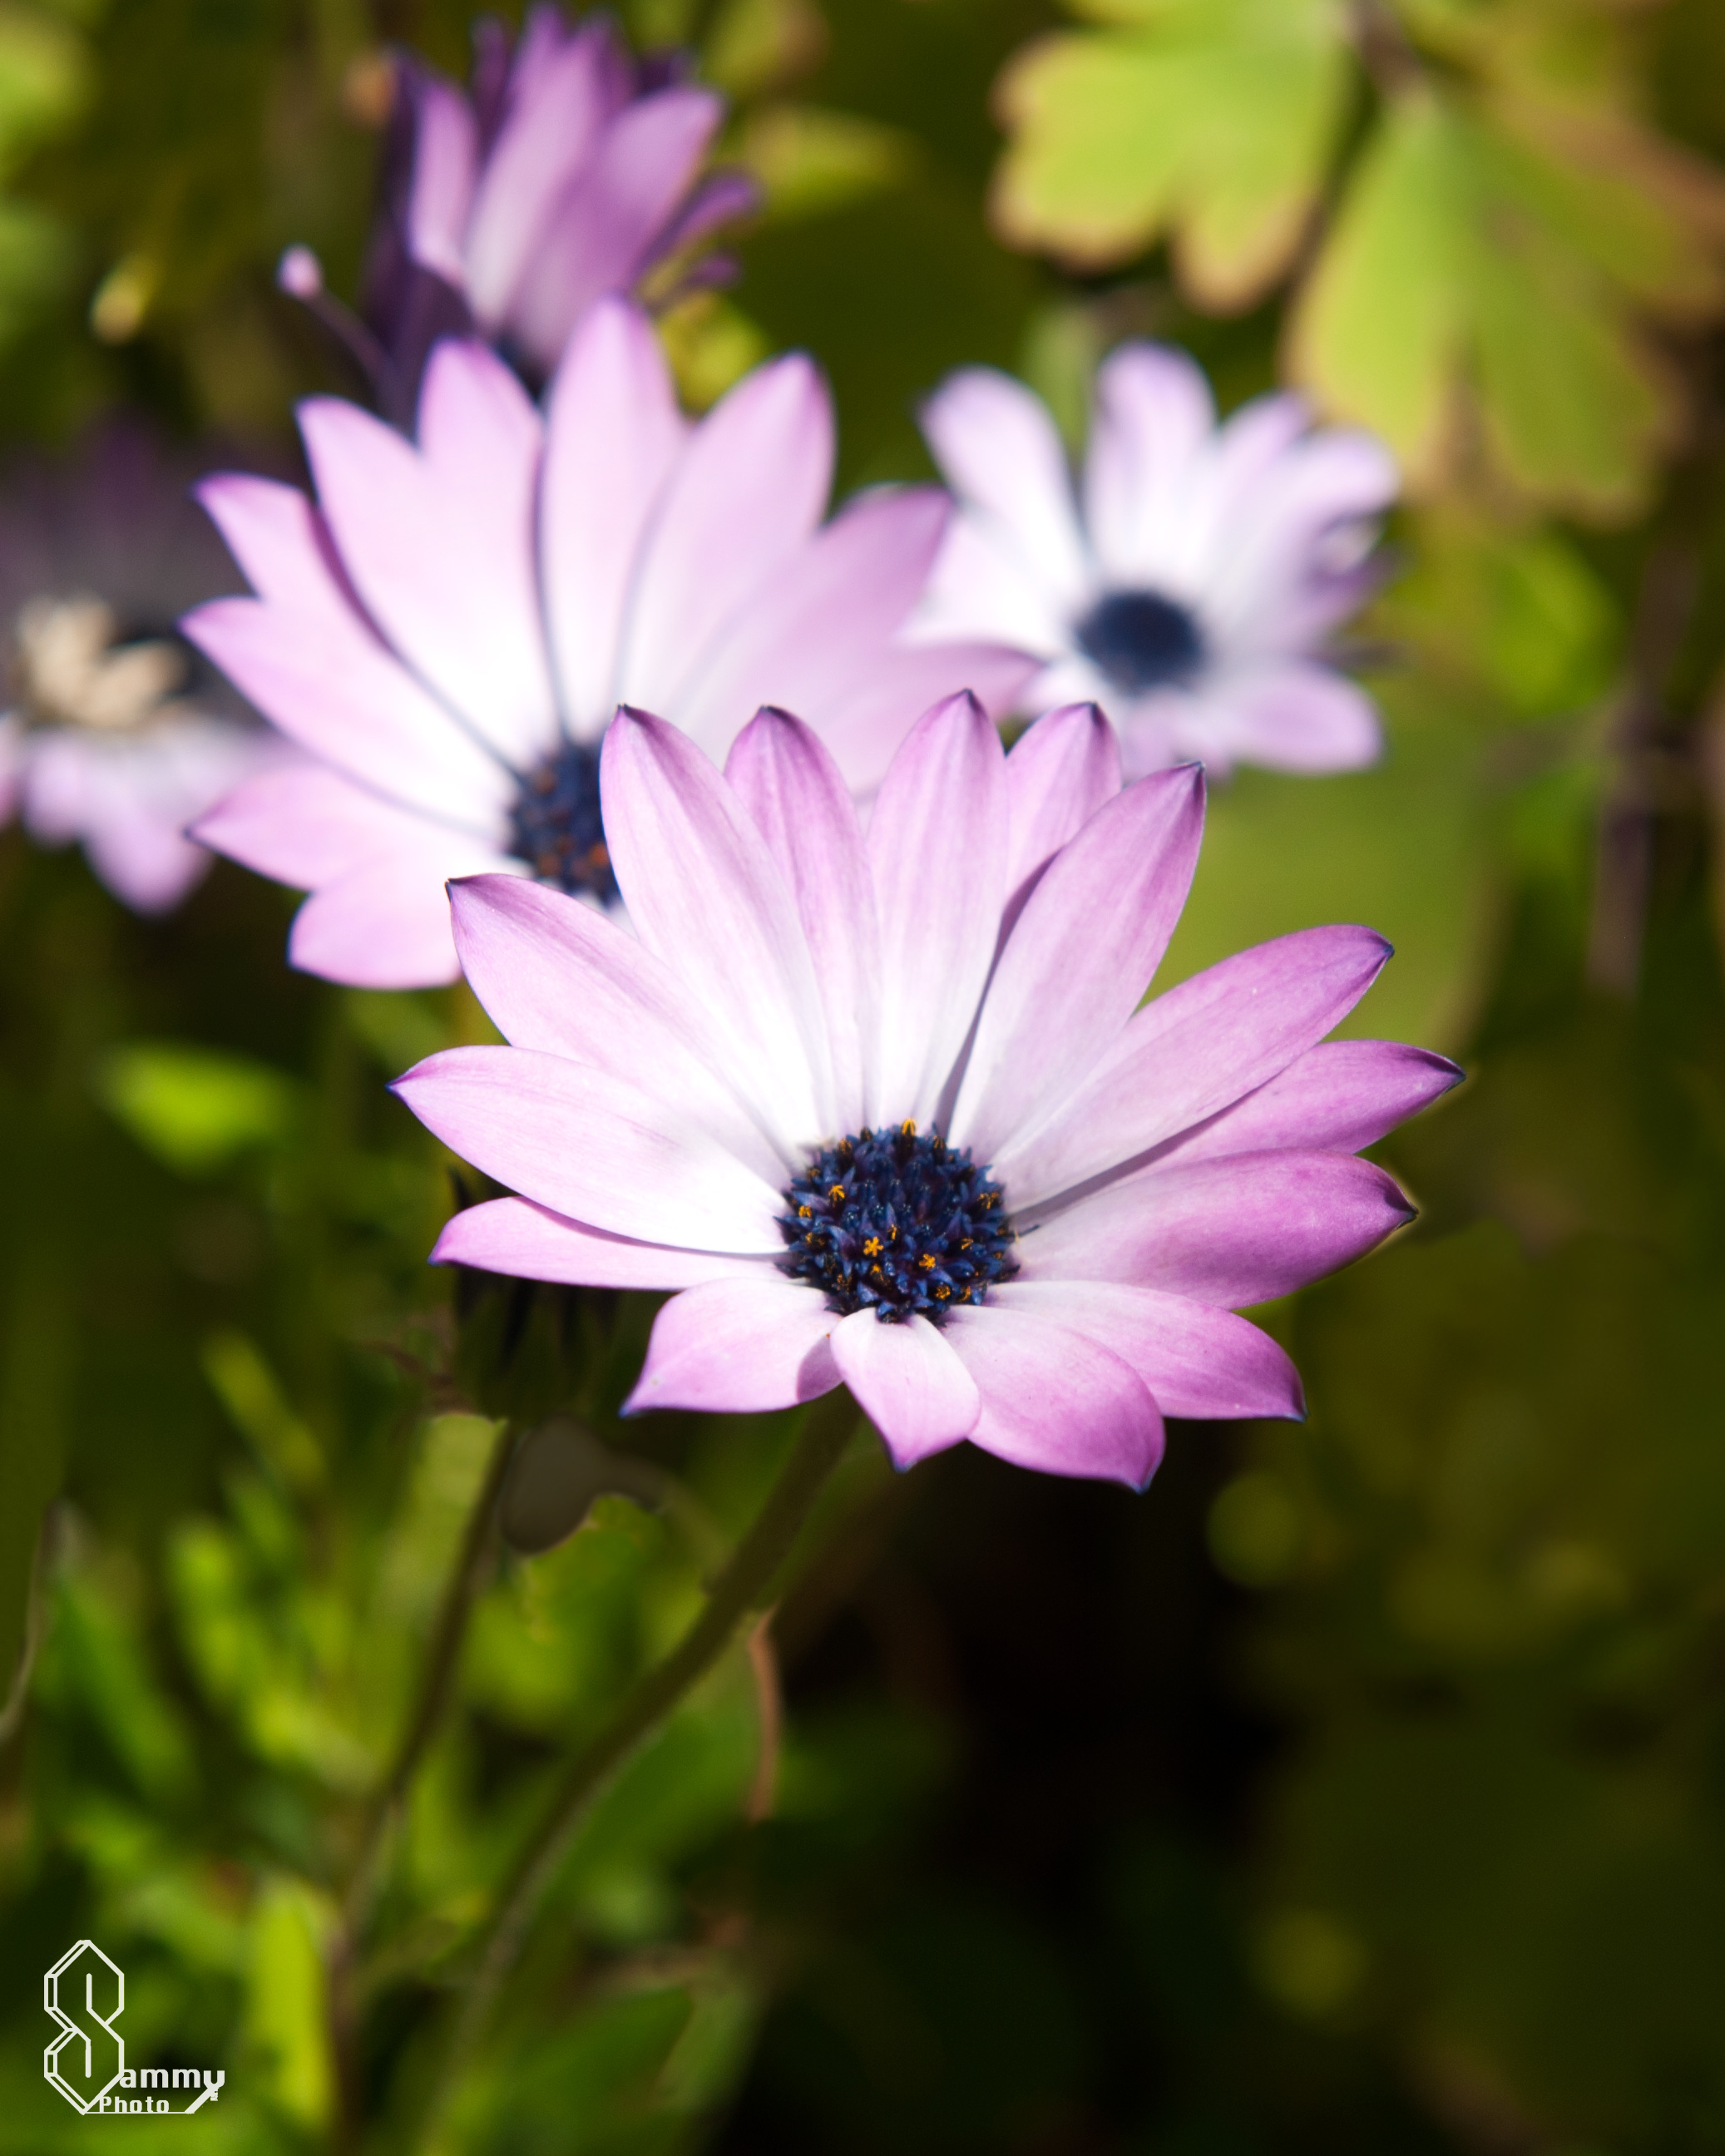 Flowers sammy photo this is a beautiful purple and white daisy the blue center of the flower looks amazing next to the soft purple of the flower petals izmirmasajfo